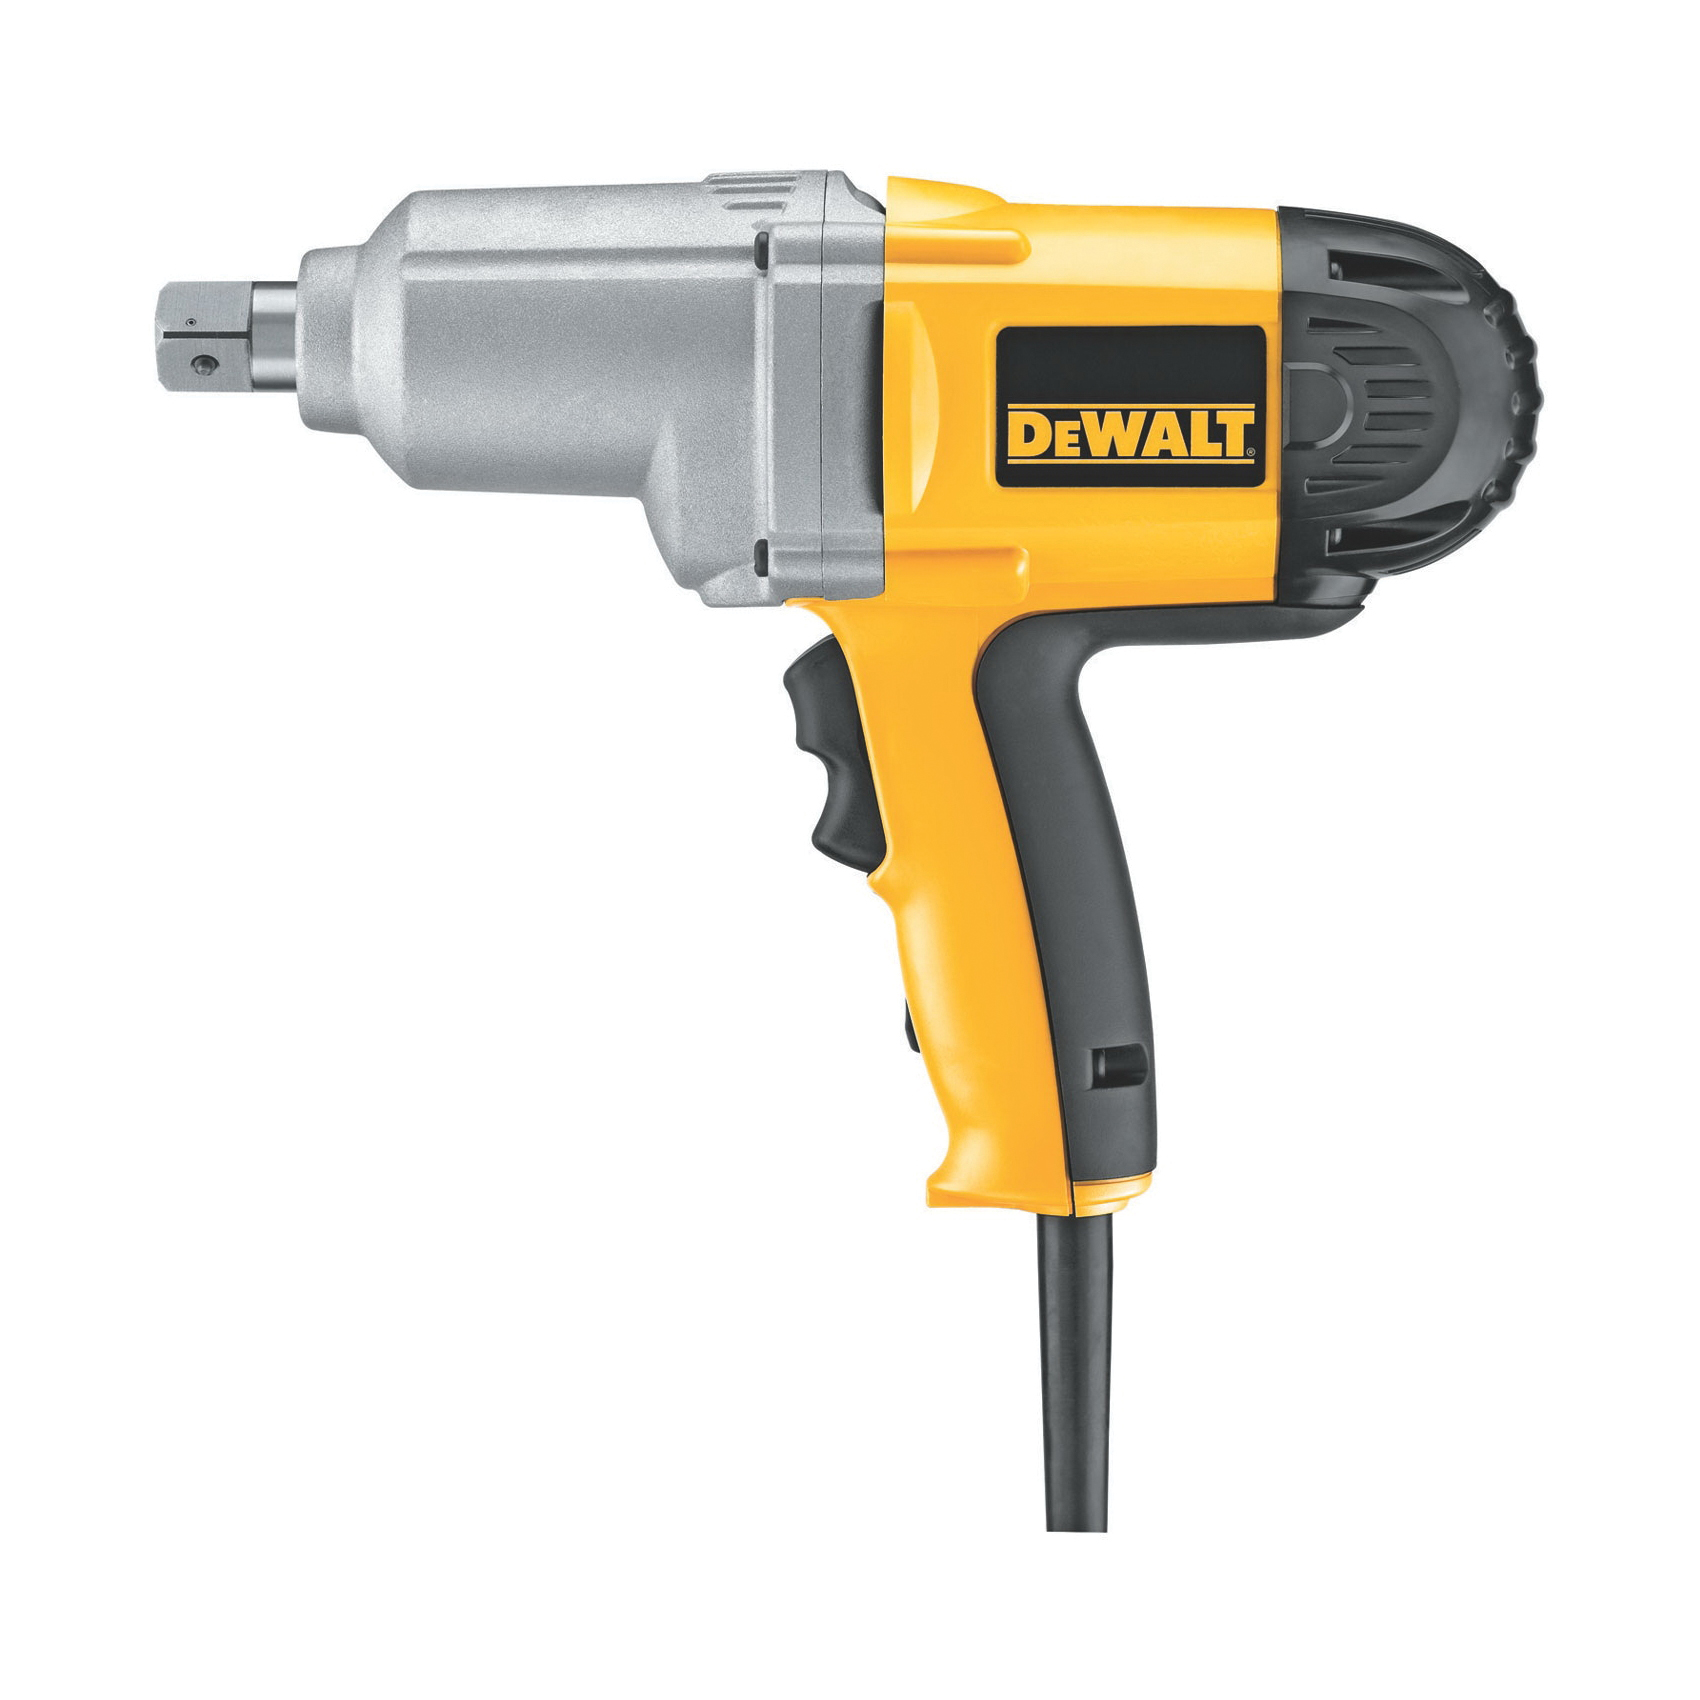 DeWALT® DW294 Corded Impact Wrench With Detent Pin Anvil, 3/4 in Straight Drive, 2700 bpm, 345 ft-lb Torque, 120 VAC, 11-1/4 in OAL